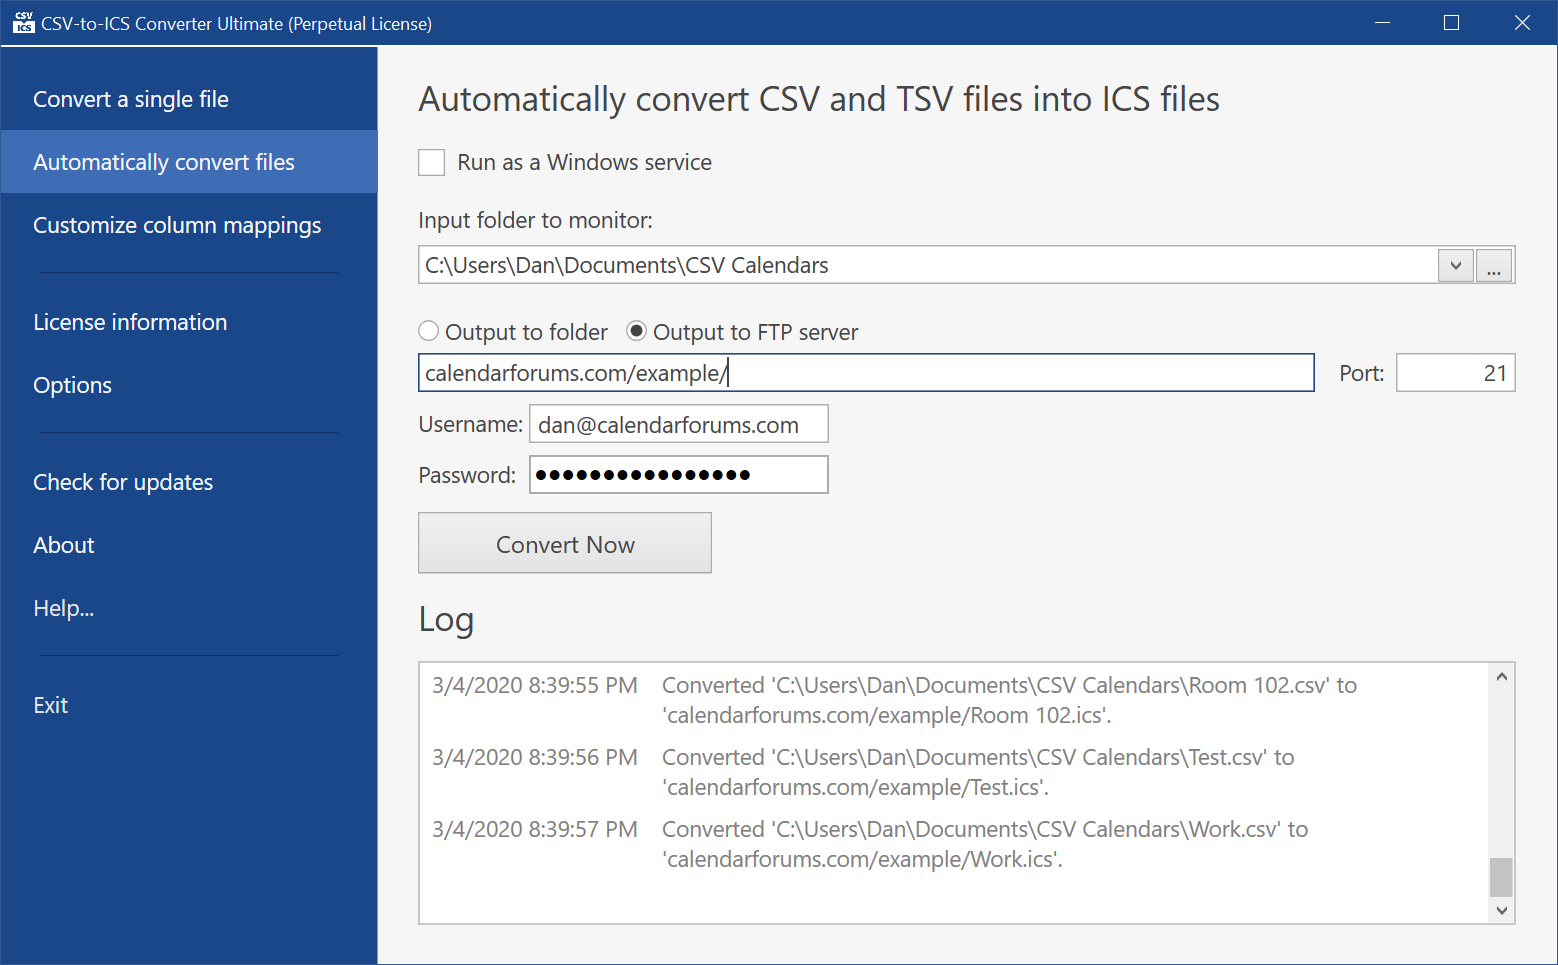 CSV files can be monitored and corresponding ICS files automatically generated when changes are detected. The ICS files can even be uploaded to a website.